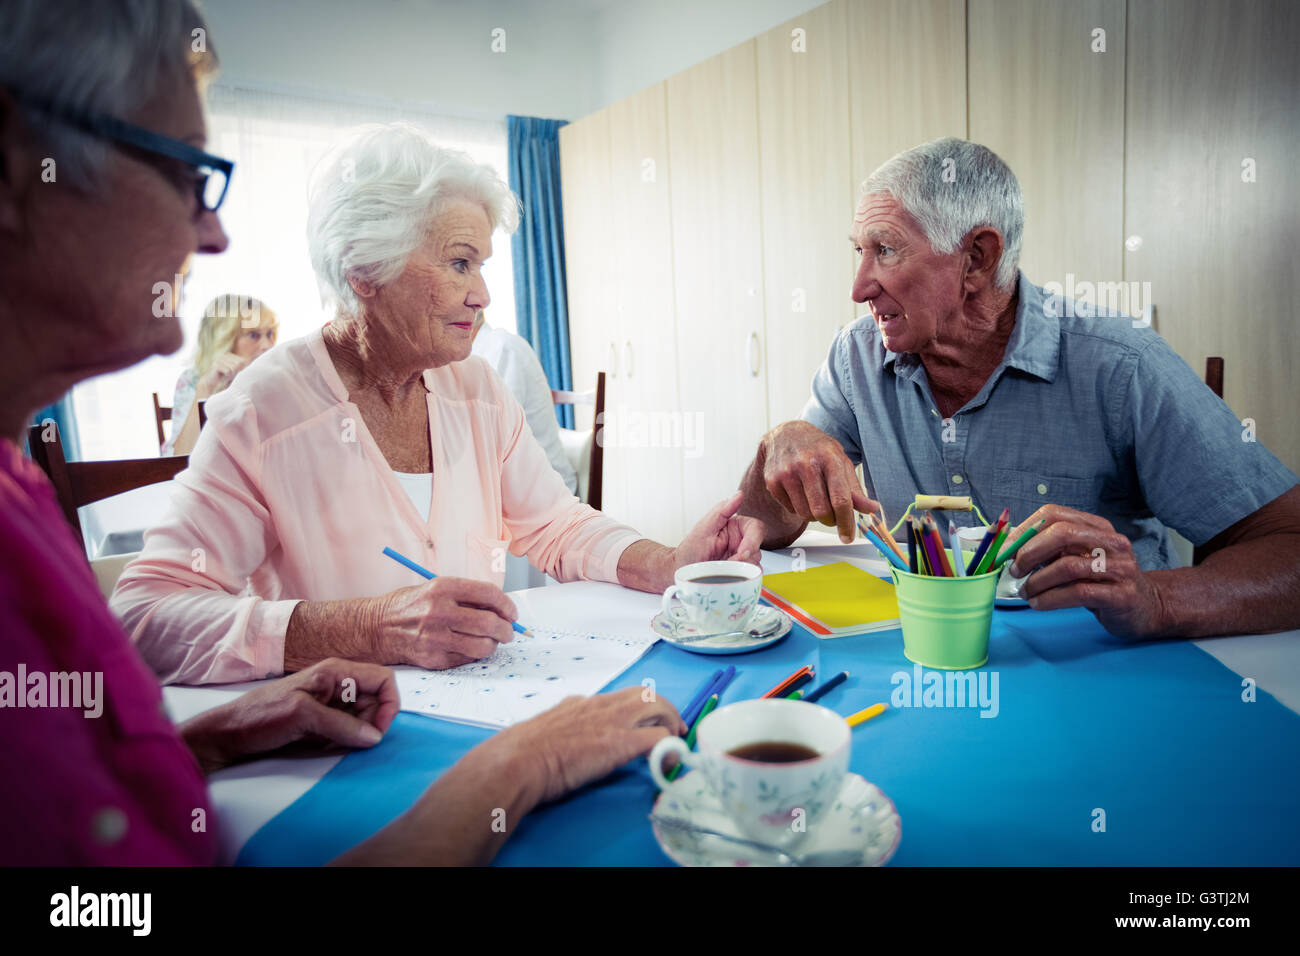 Most Reliable Senior Online Dating Services In Florida